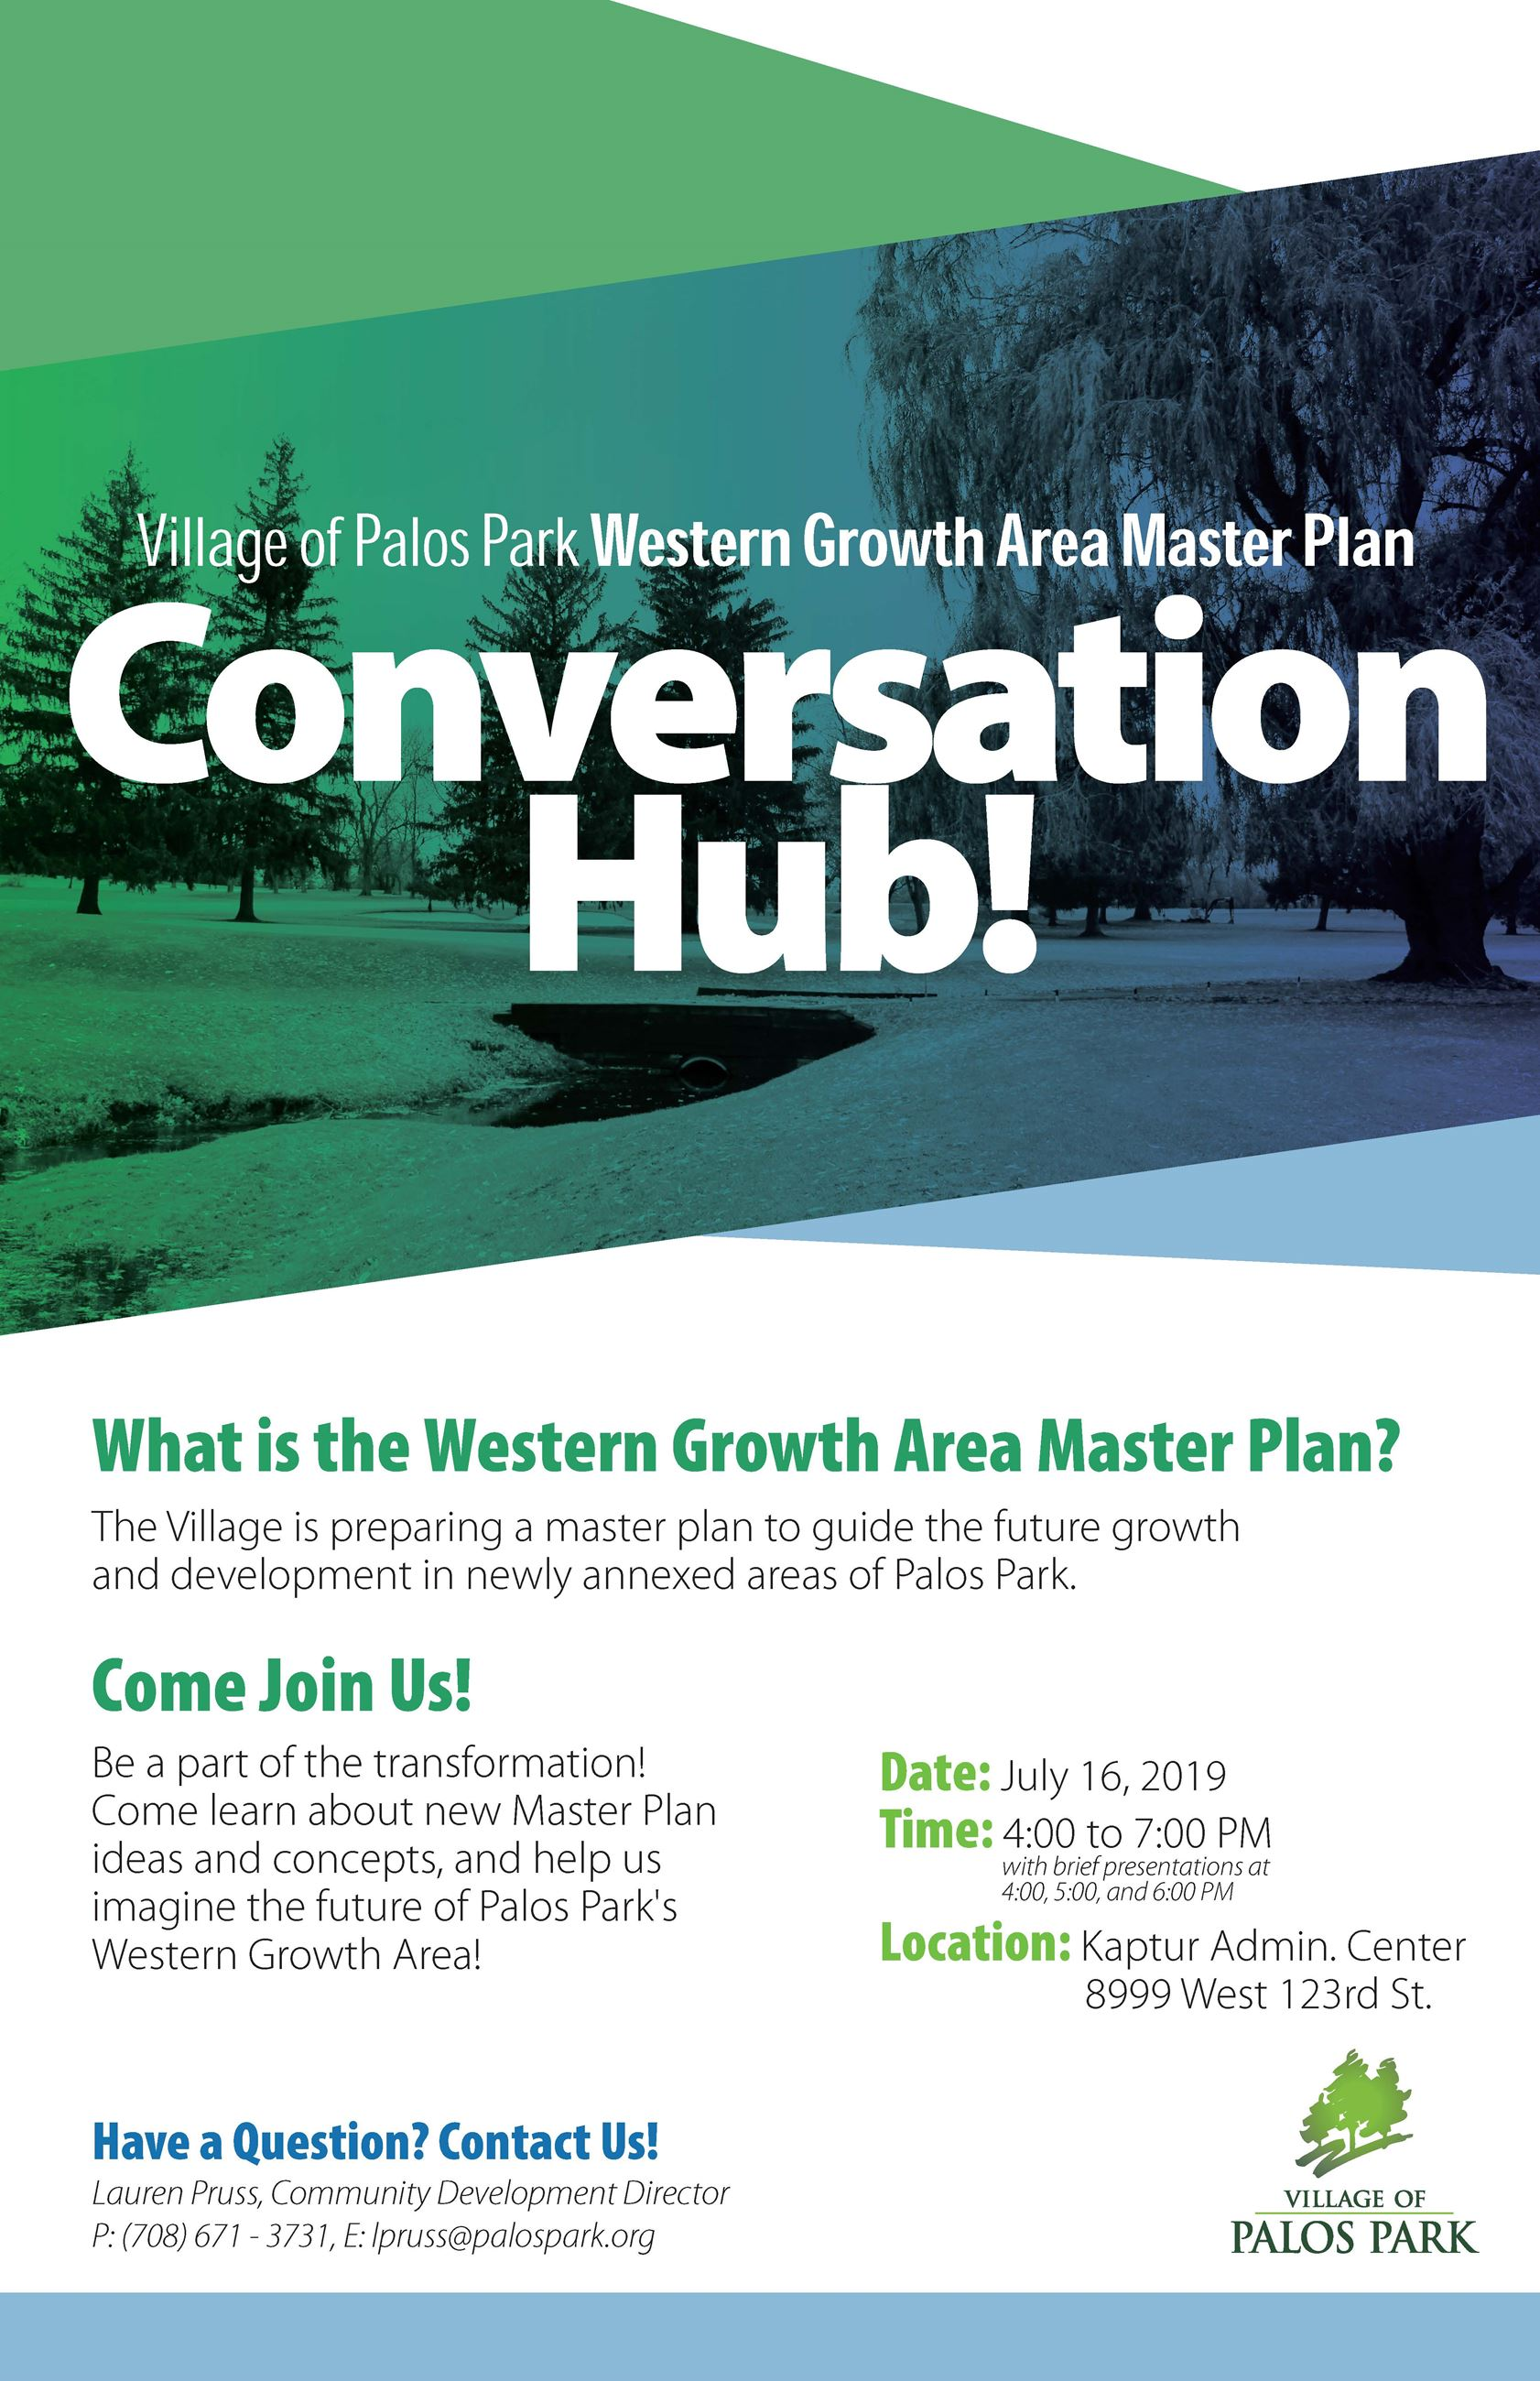 Palos Park Conversation Hub Flyer copy (002) (002)